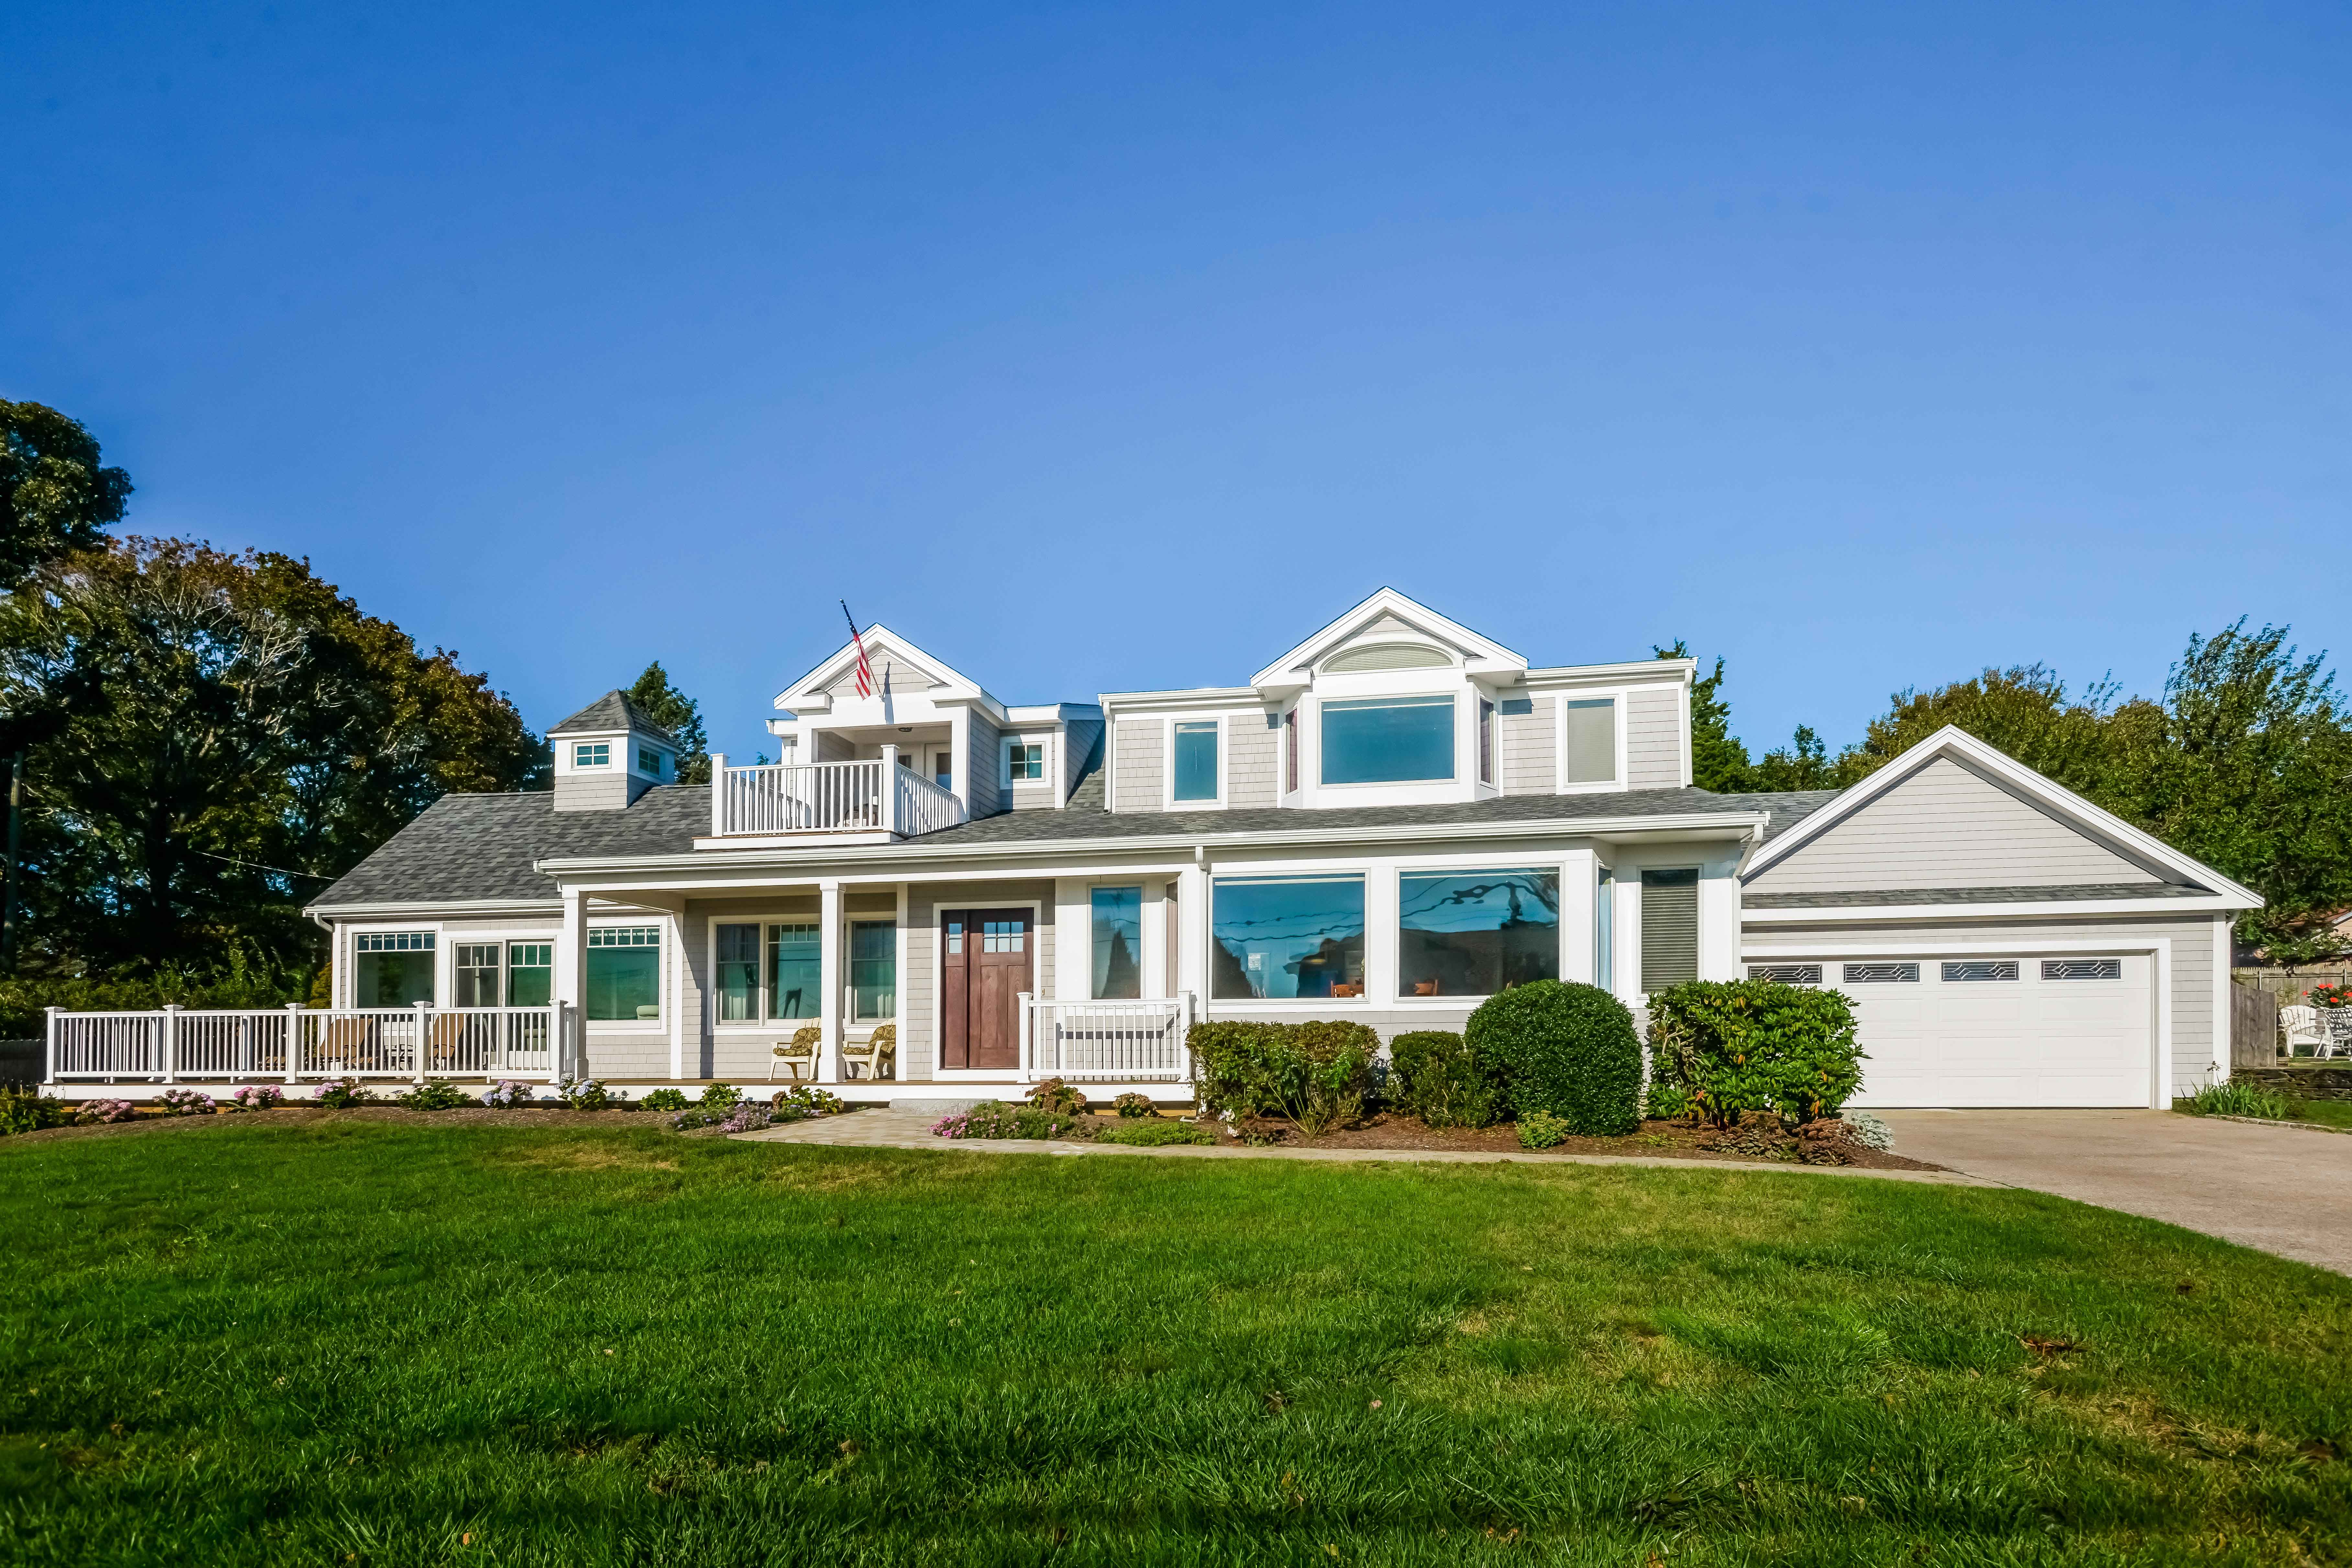 SEAVIEW PARK HOME SELLS FOR ABOVE ASK WITH LILA DELMAN ASSOCIATES REPRESENTING BOTH SIDES OF THE TRANSACTION